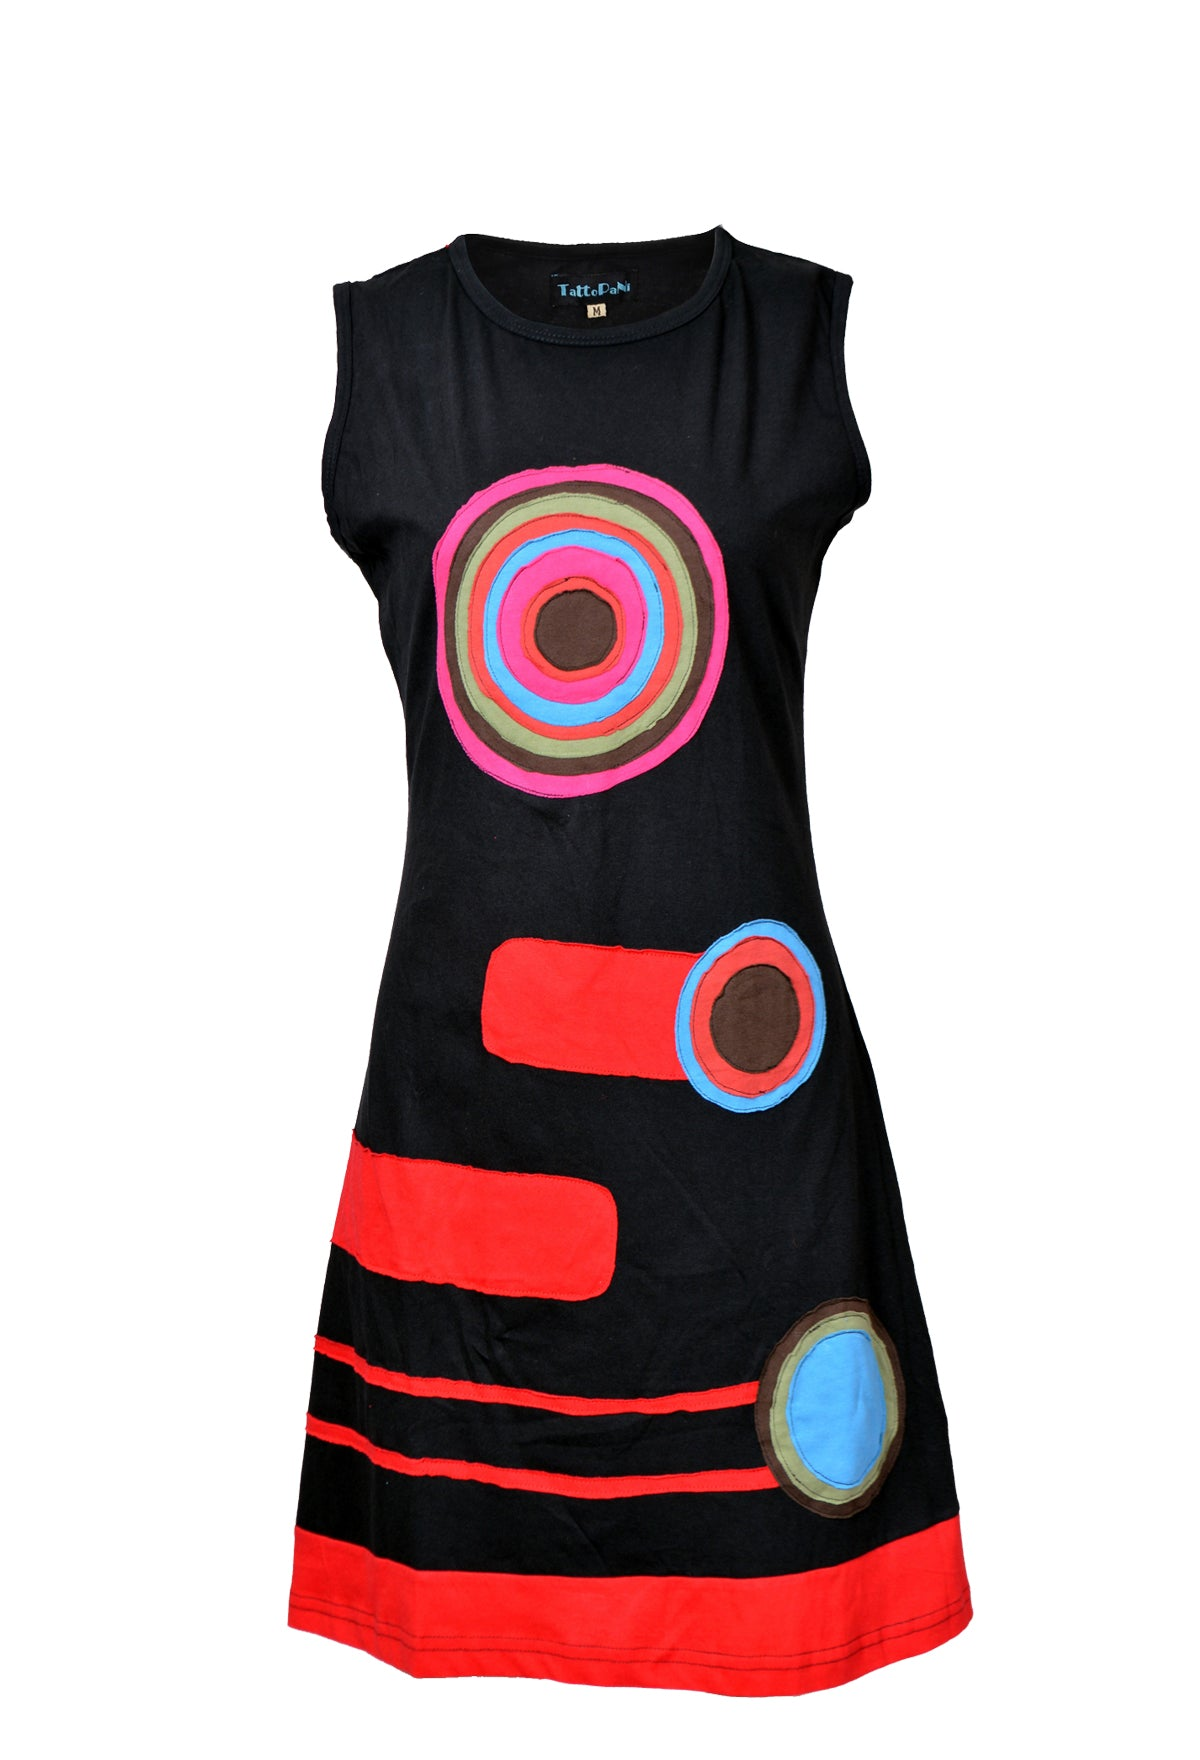 Ladies Sleeveless Dress with Muticolored Circle Patch Design-RAINBOW - Craze Trade Limited